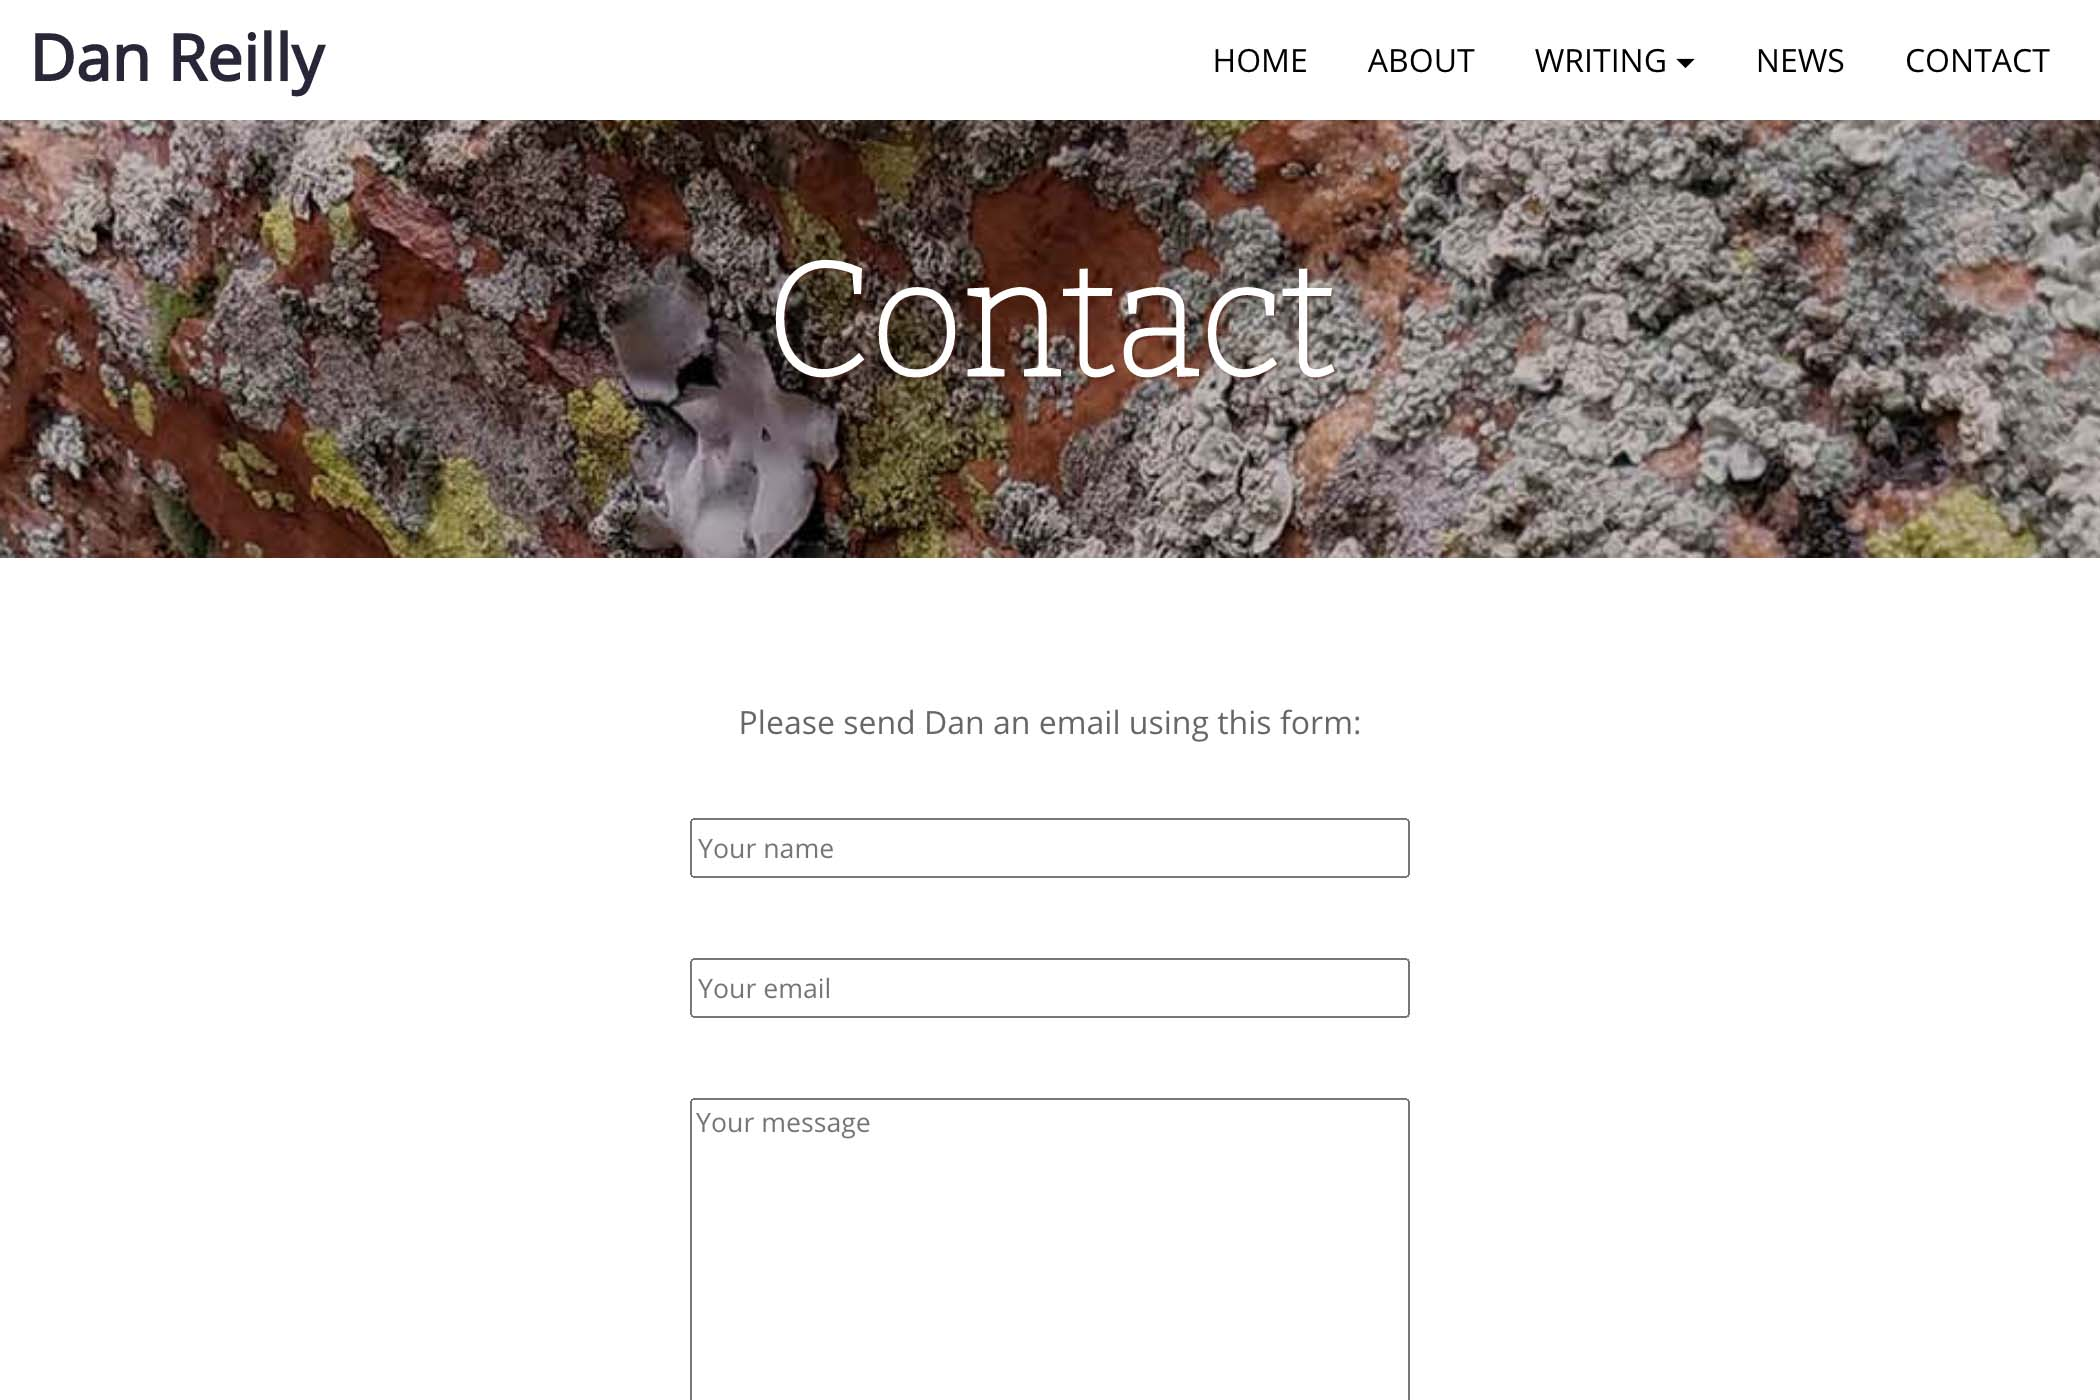 website design for a writer - contact page